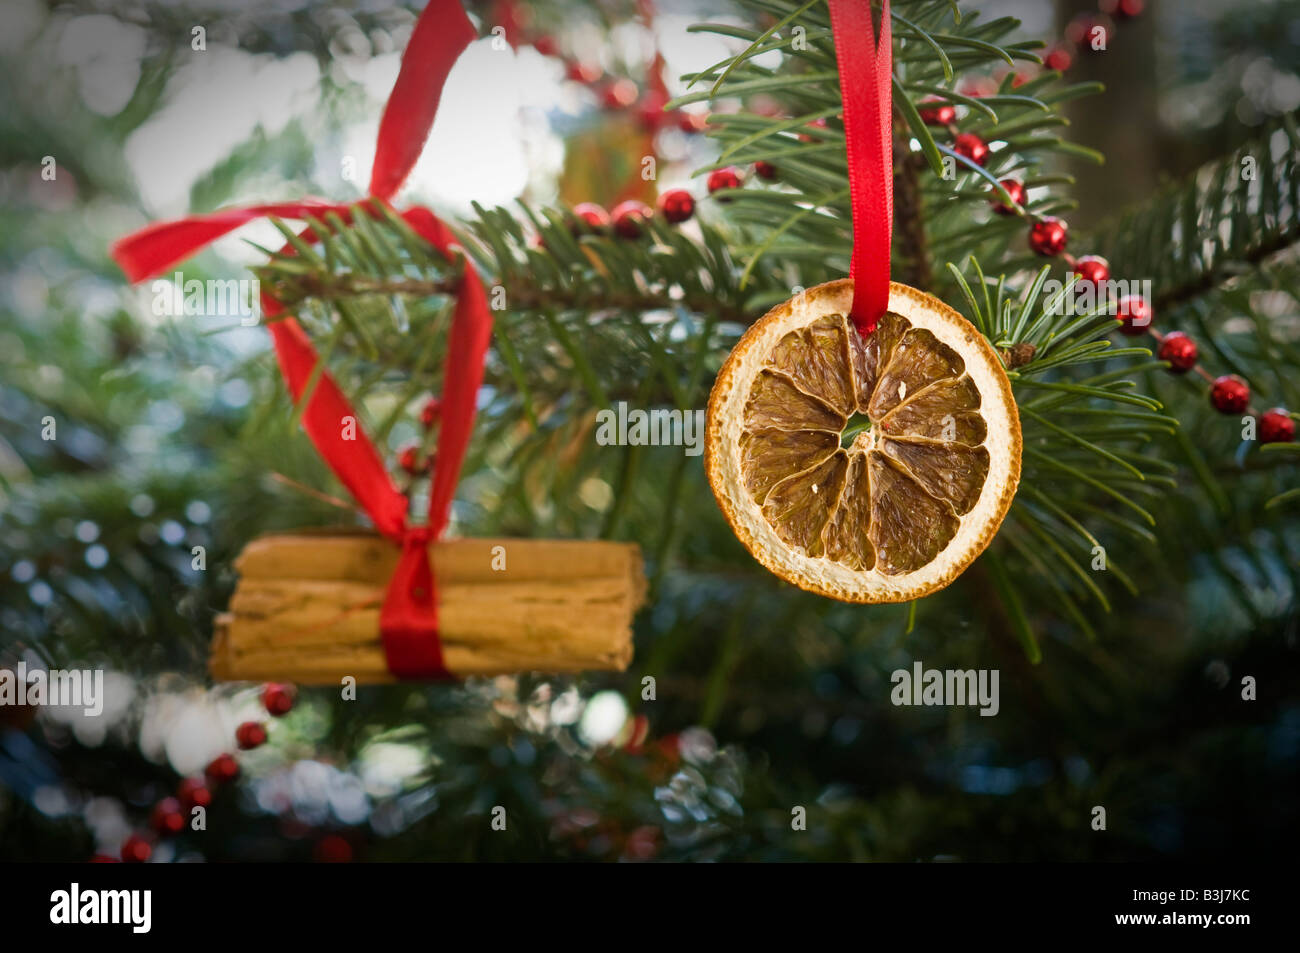 traditional christmas tree decoration comprising dried orange slices and cinnamon sticks